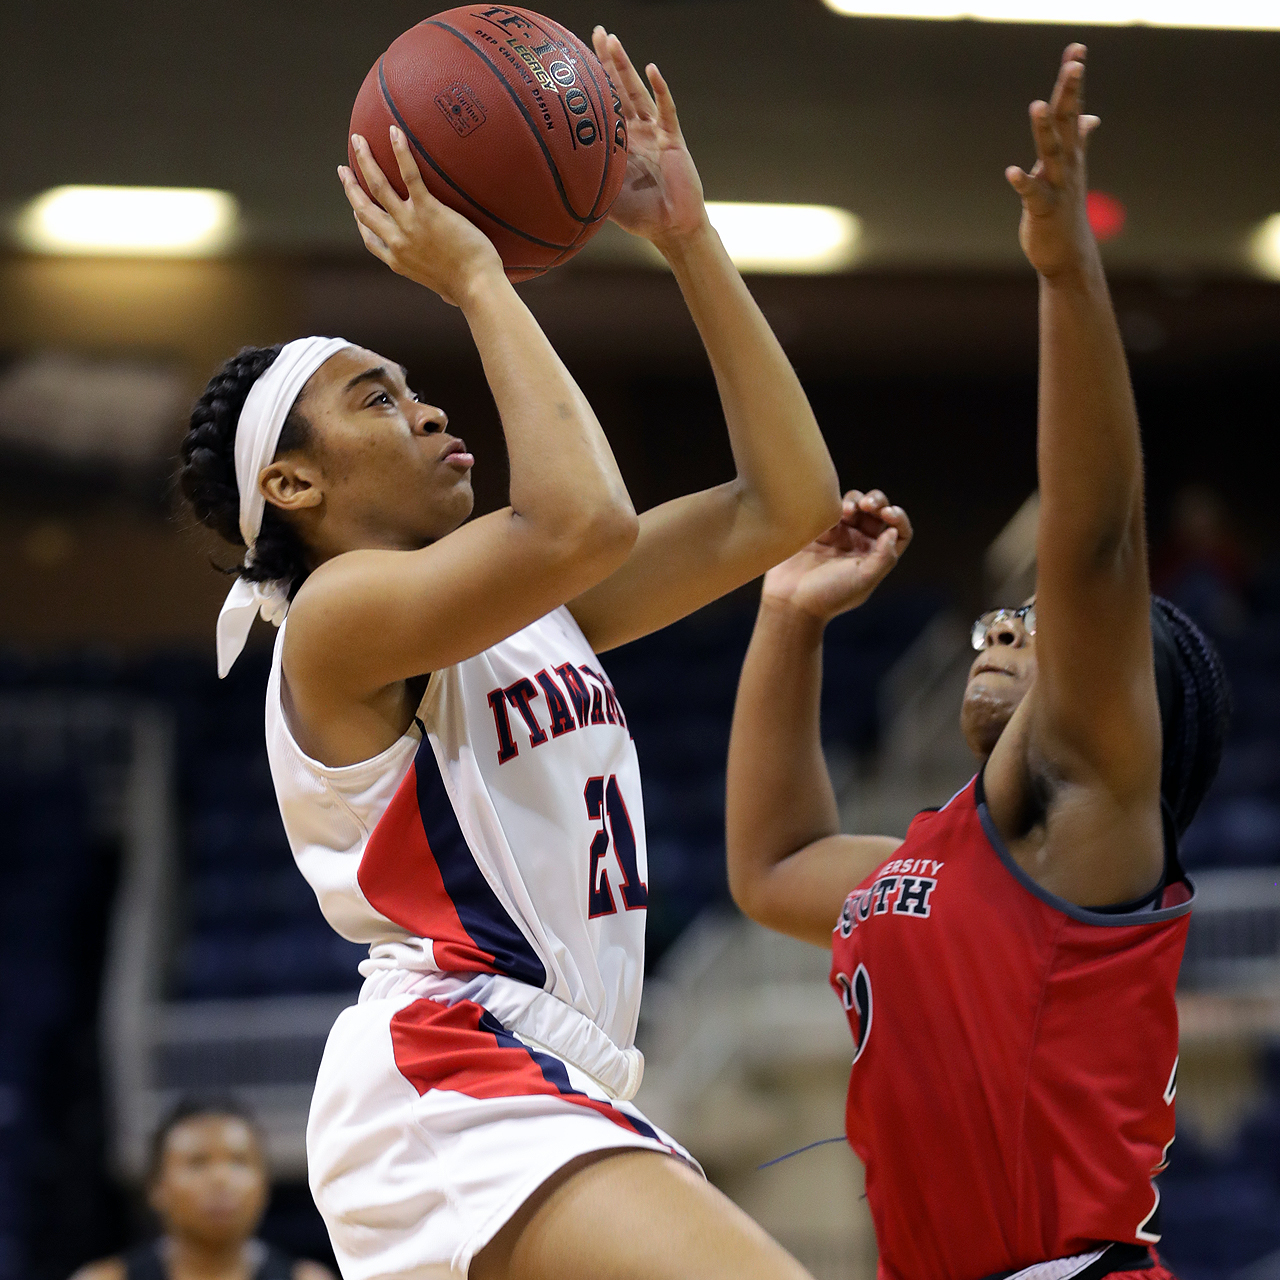 Big third quarter gives Lady Indians 96-37 win over ASU Mid-South